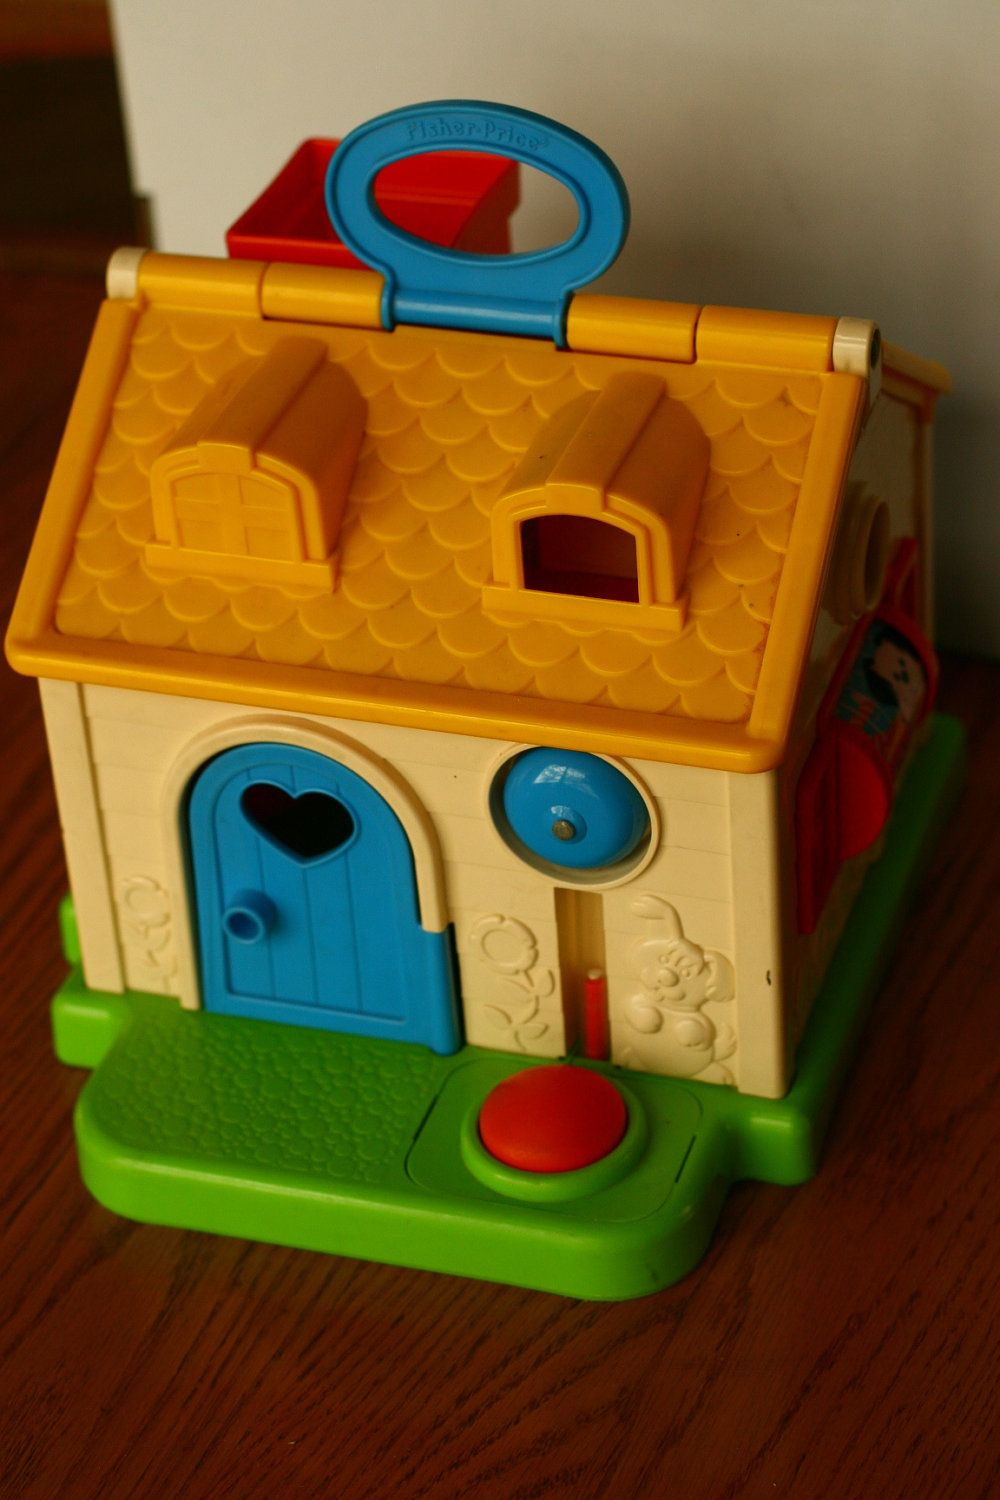 Vintage 1984 Fisher Price Toy Toy House 80s Toy Fisher